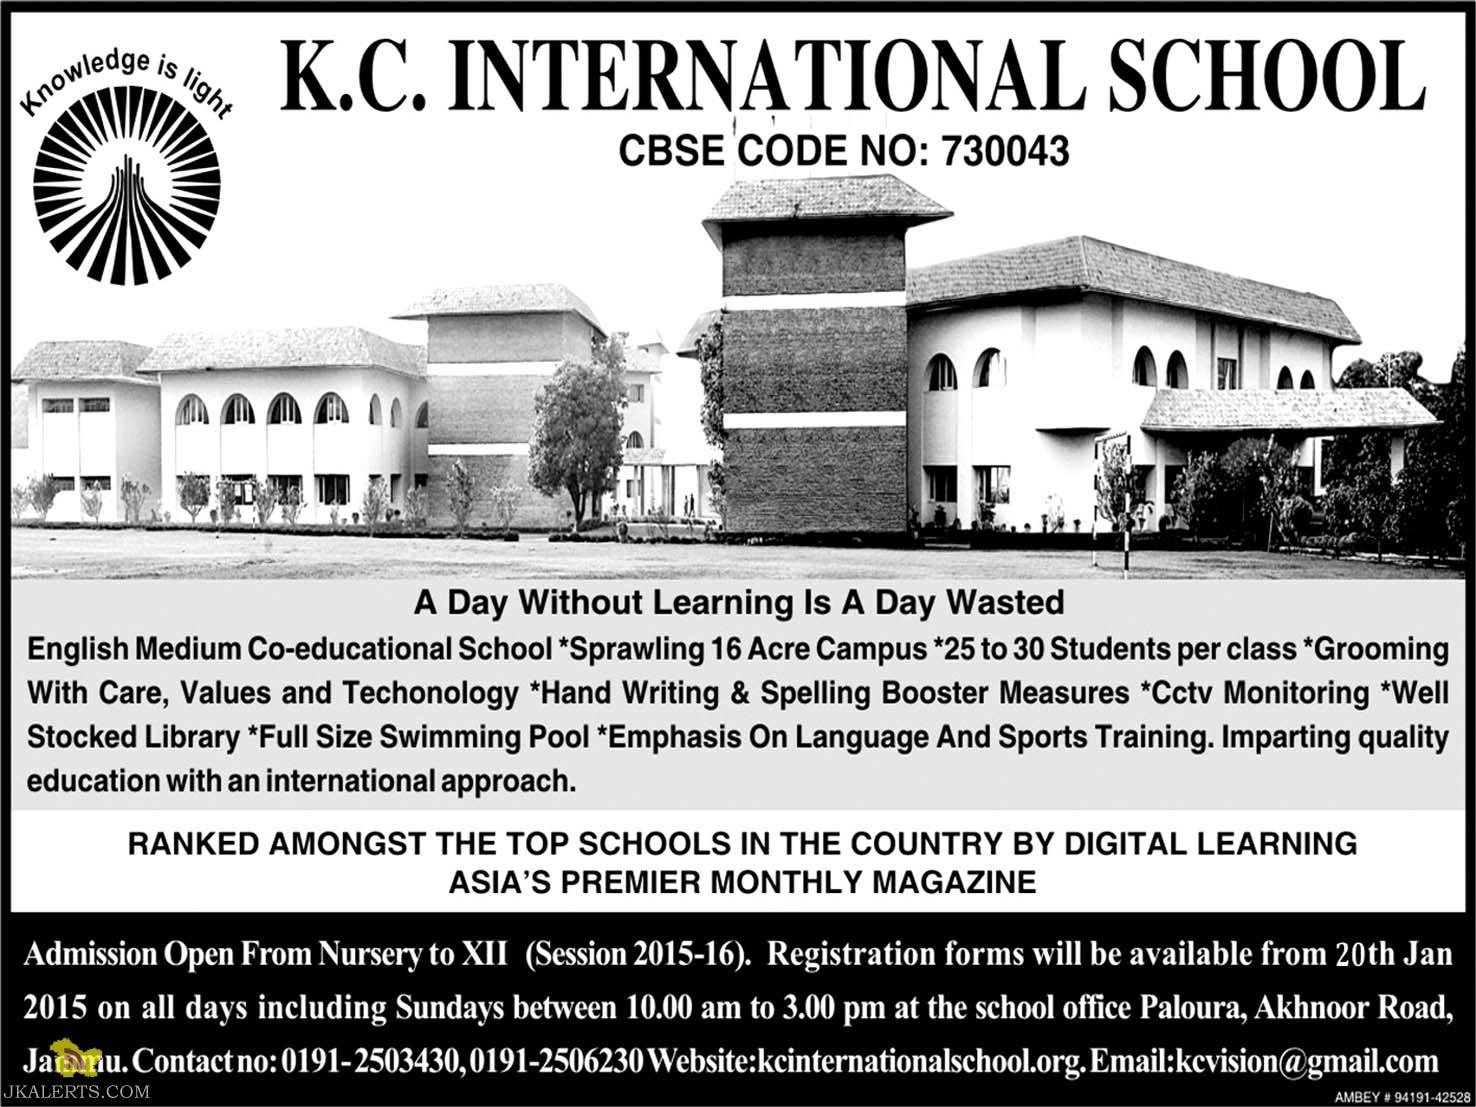 K.C. INTERNATIONAL SCHOOL Admission Open From Nursery to XII (Session 2015-16)